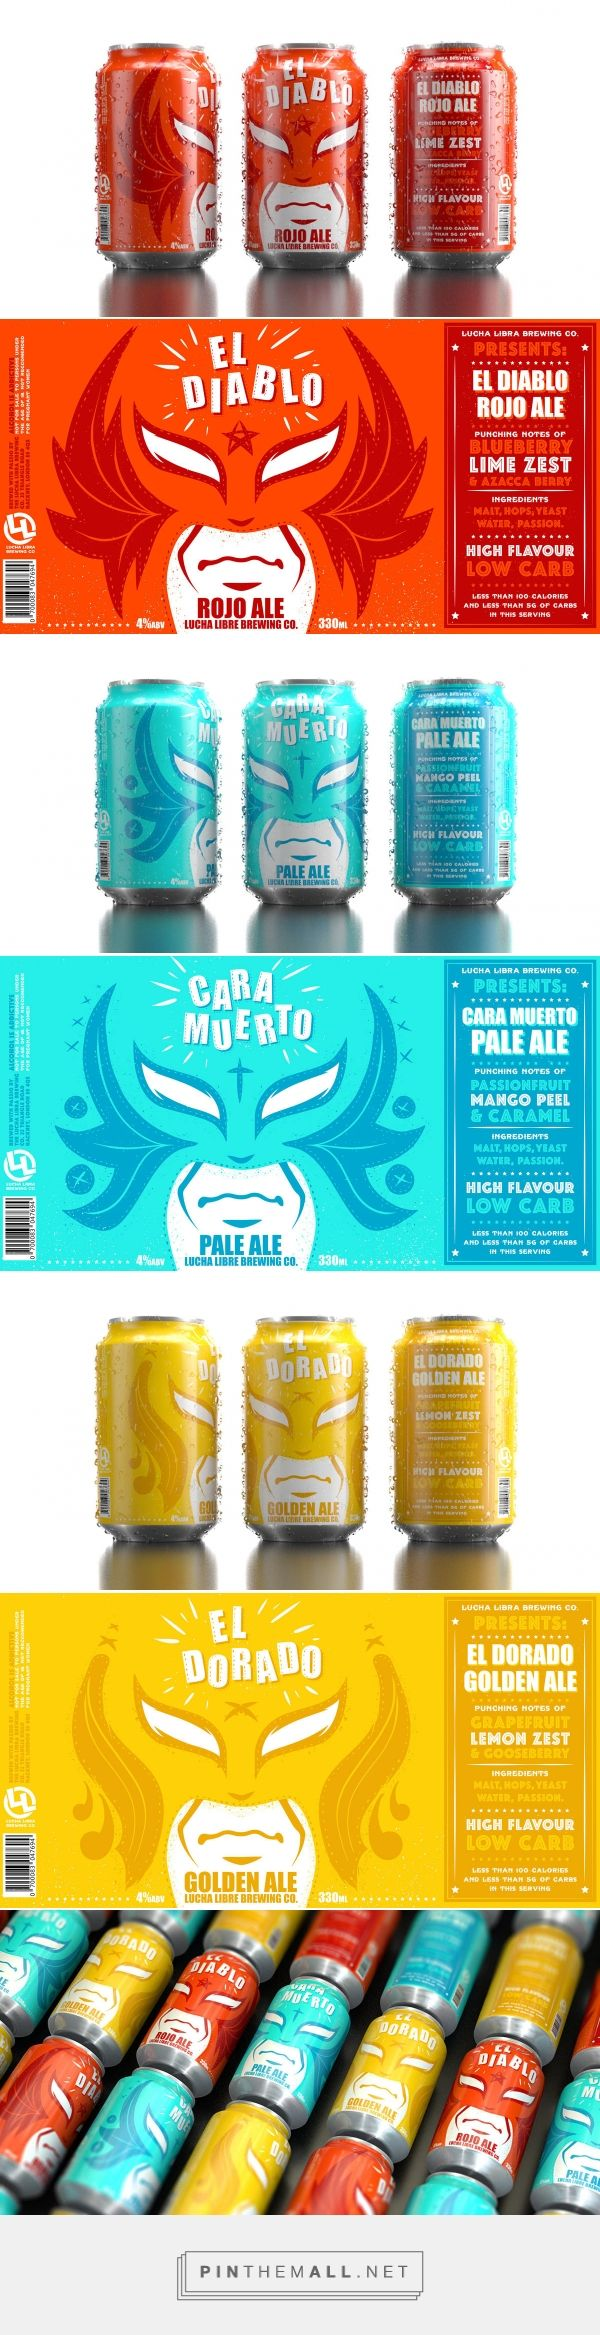 Lucha Libre Brew Co. ‪‎packaging‬ ‪‎design‬ by DUSK (‪UK‬) - http://www.packagingoftheworld.com/2016/07/lucha-libre-brew-co.html